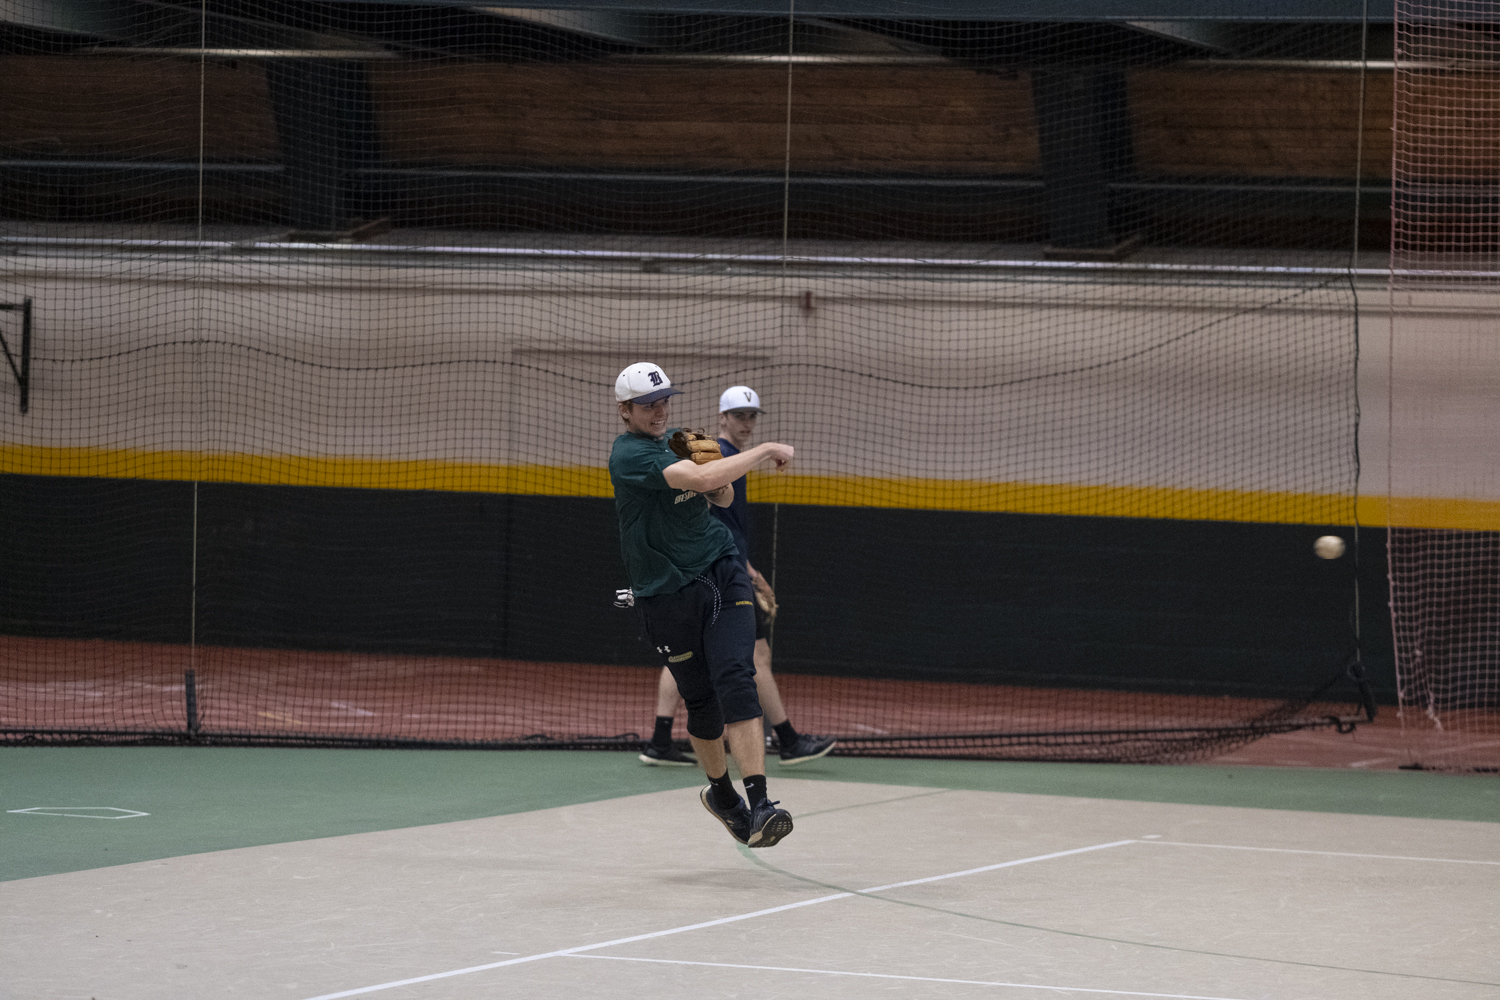 Junior Pat Brennan throws a baseball in midair during a club baseball practice, Oct. 17. Brennan is one of the 18 members of the team, according to UVM Clubs.